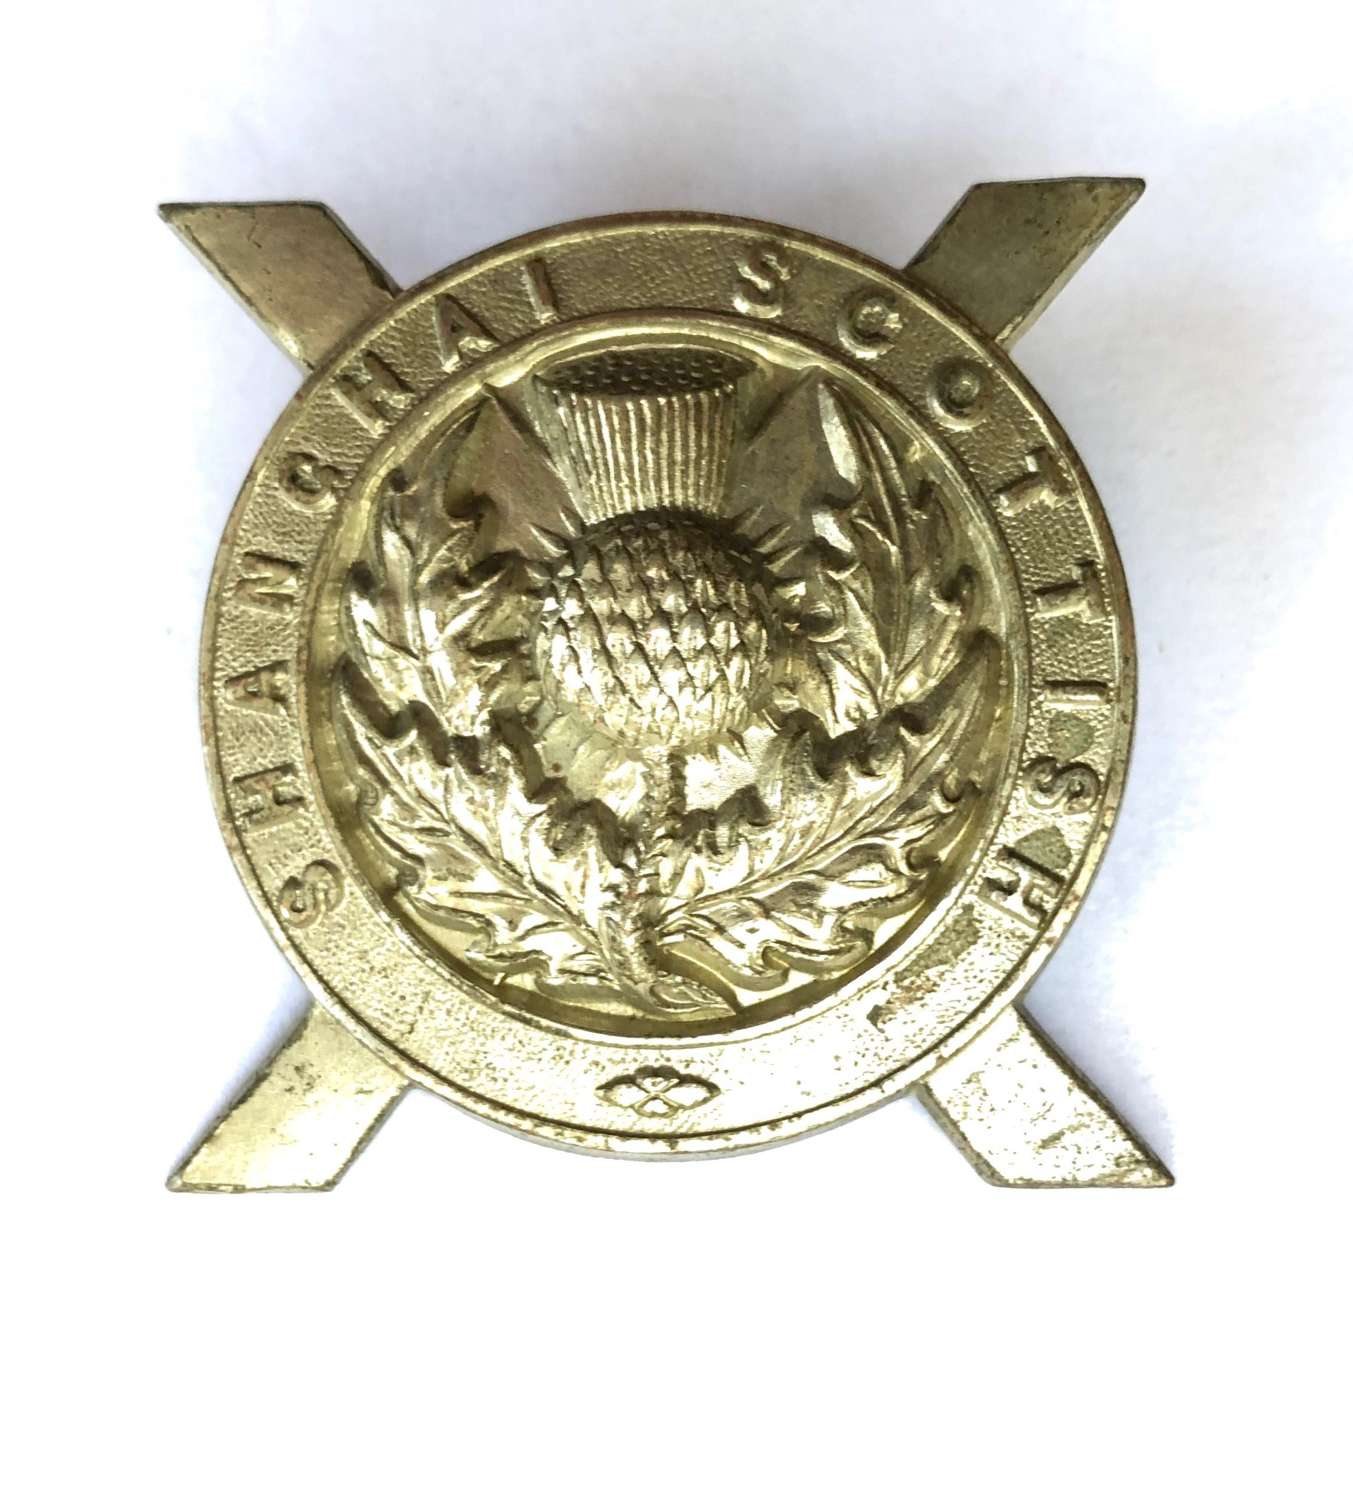 Shanghai Scottish scarce glengarry badge circa 1914-41